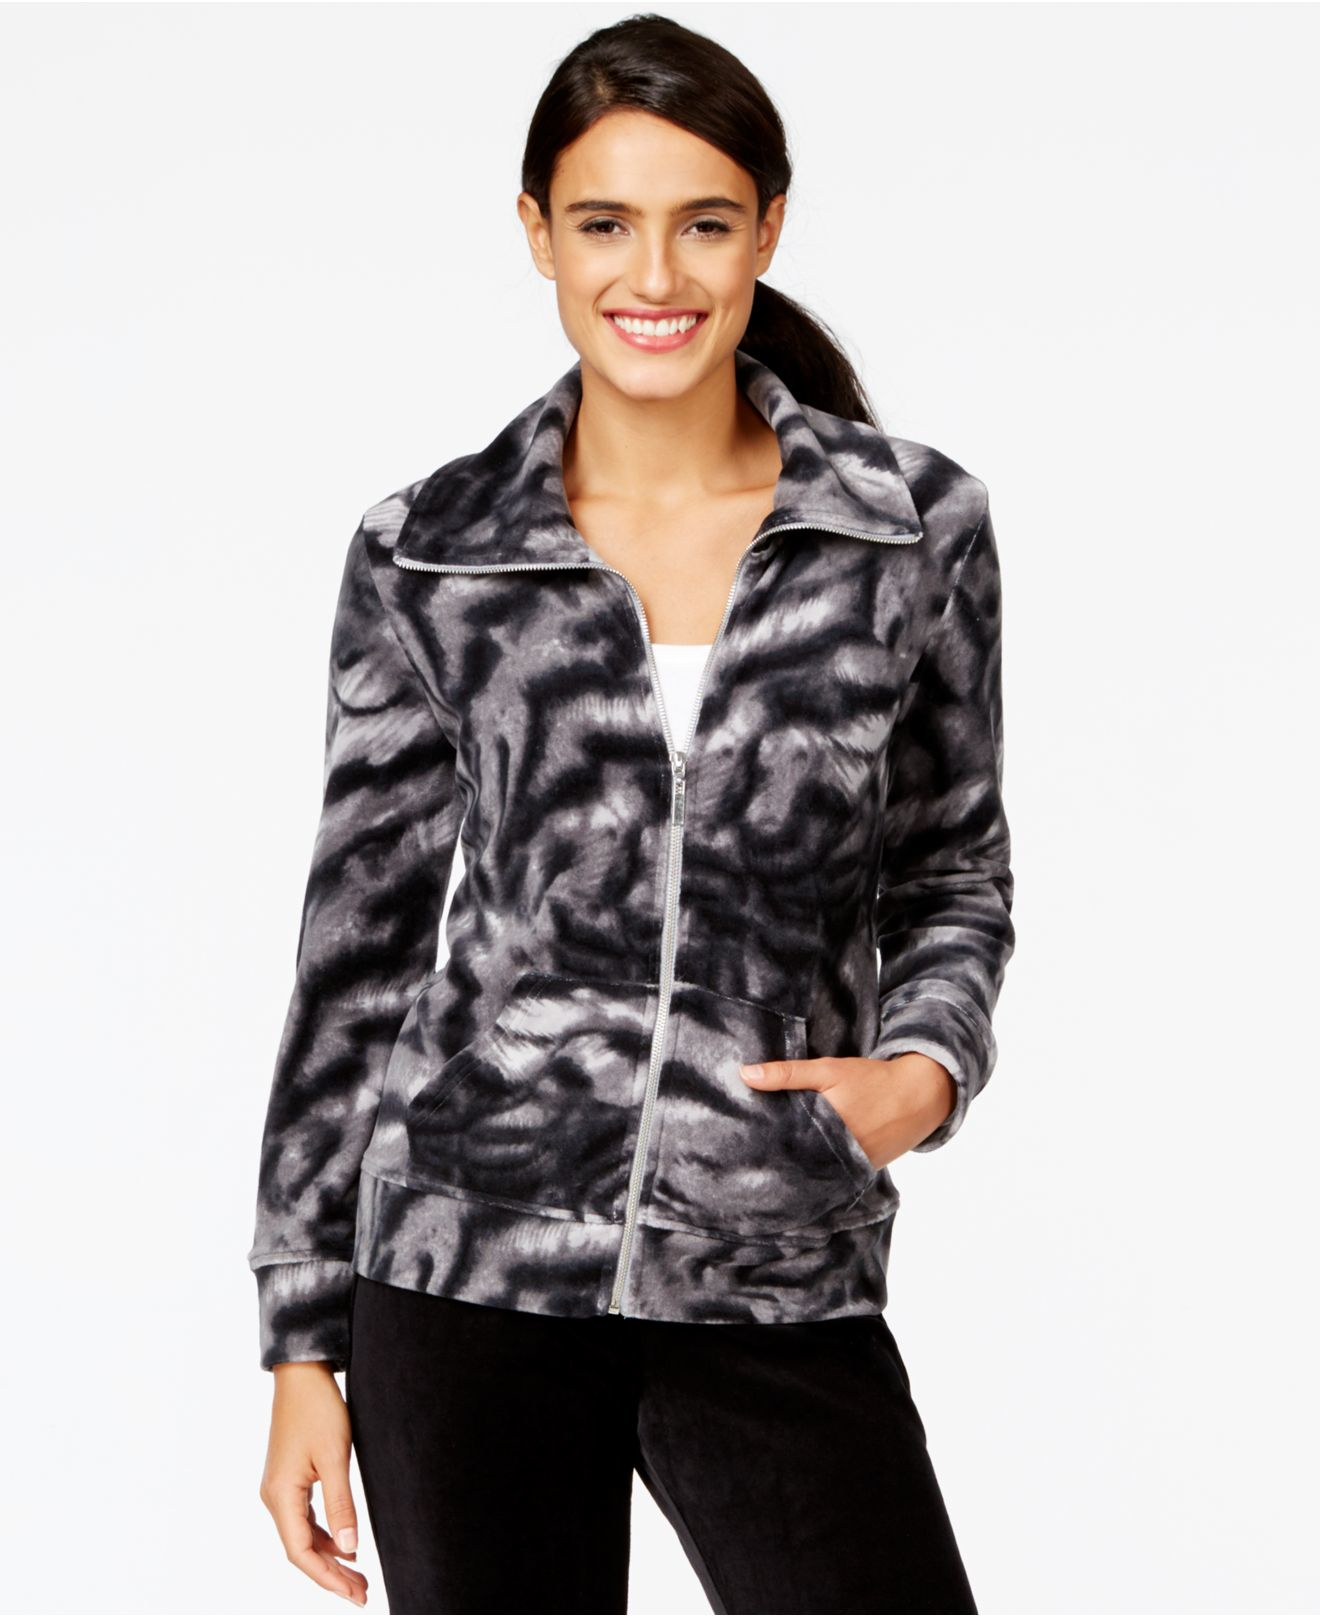 Lyst - Style U0026 Co. Styleu0026co. Petite Wing-collar Printed Jacket Only At Macyu0026#39;s In Black